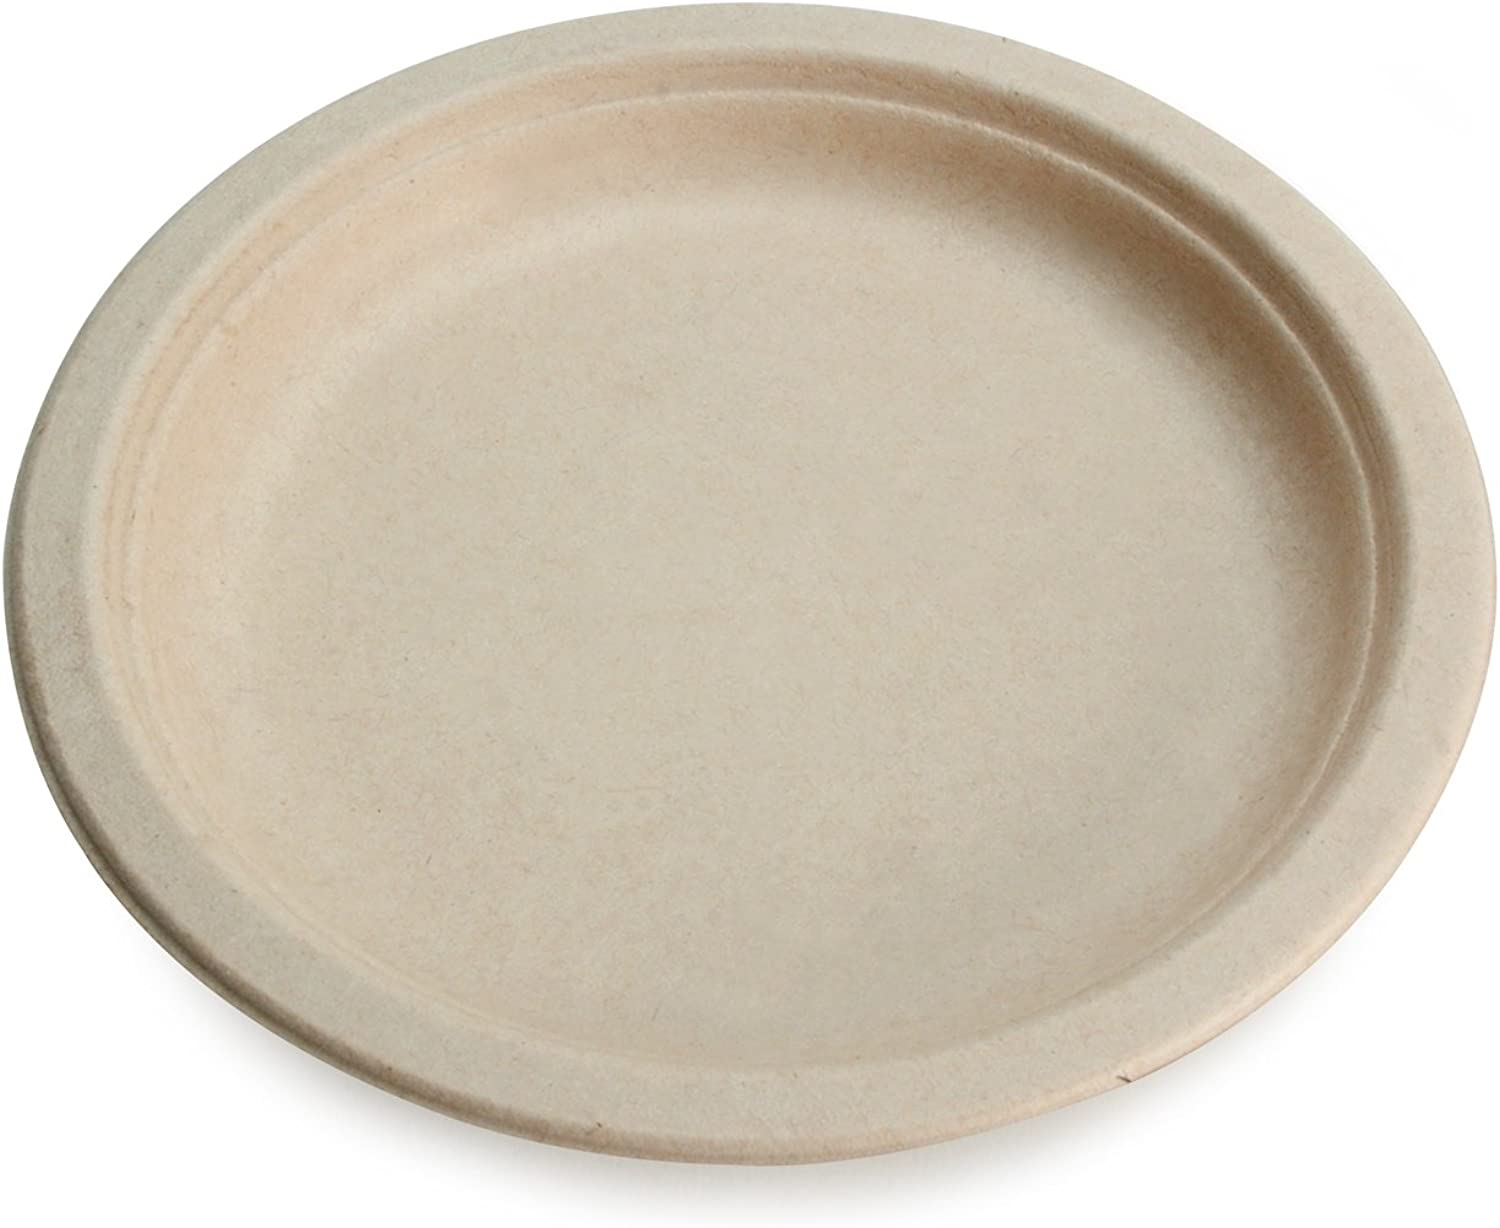 Earth's Natural Alternative Eco-Friendly, Natural Compostable Plant Fiber 10  Plate, Natural, 500 Count